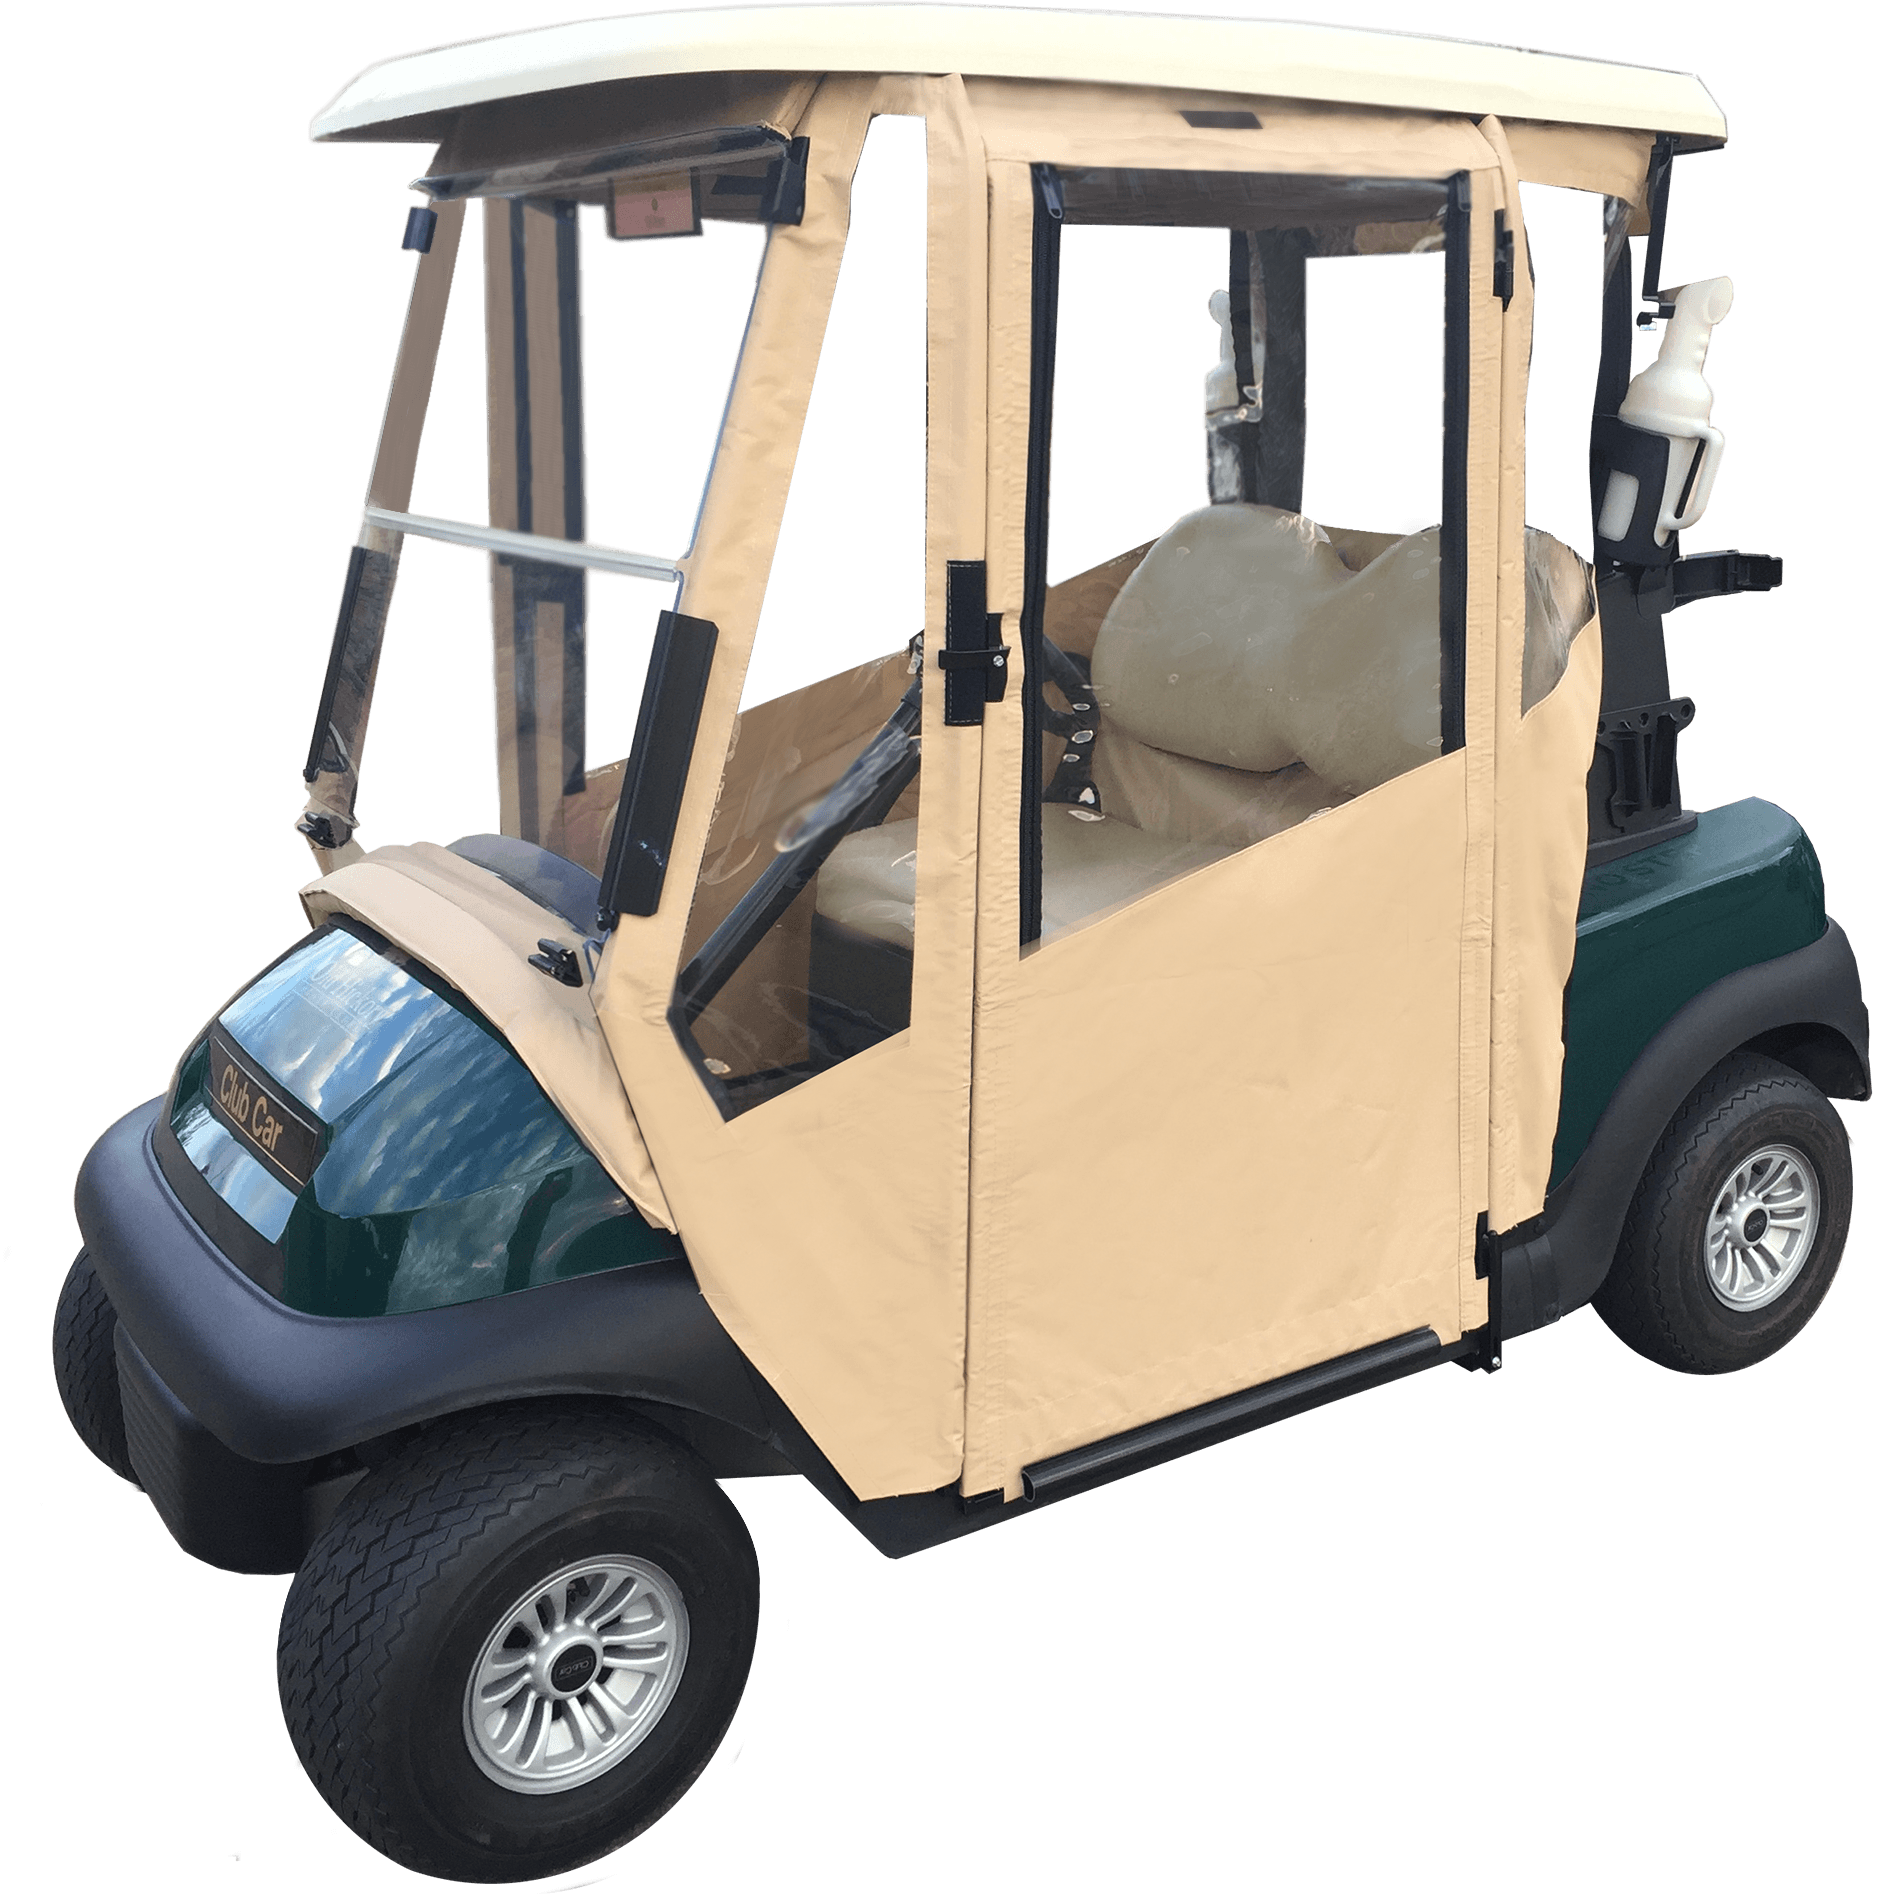 DoorWorks Hinged Door Golf Cart Enclosures - Club Car Precedent / Onward